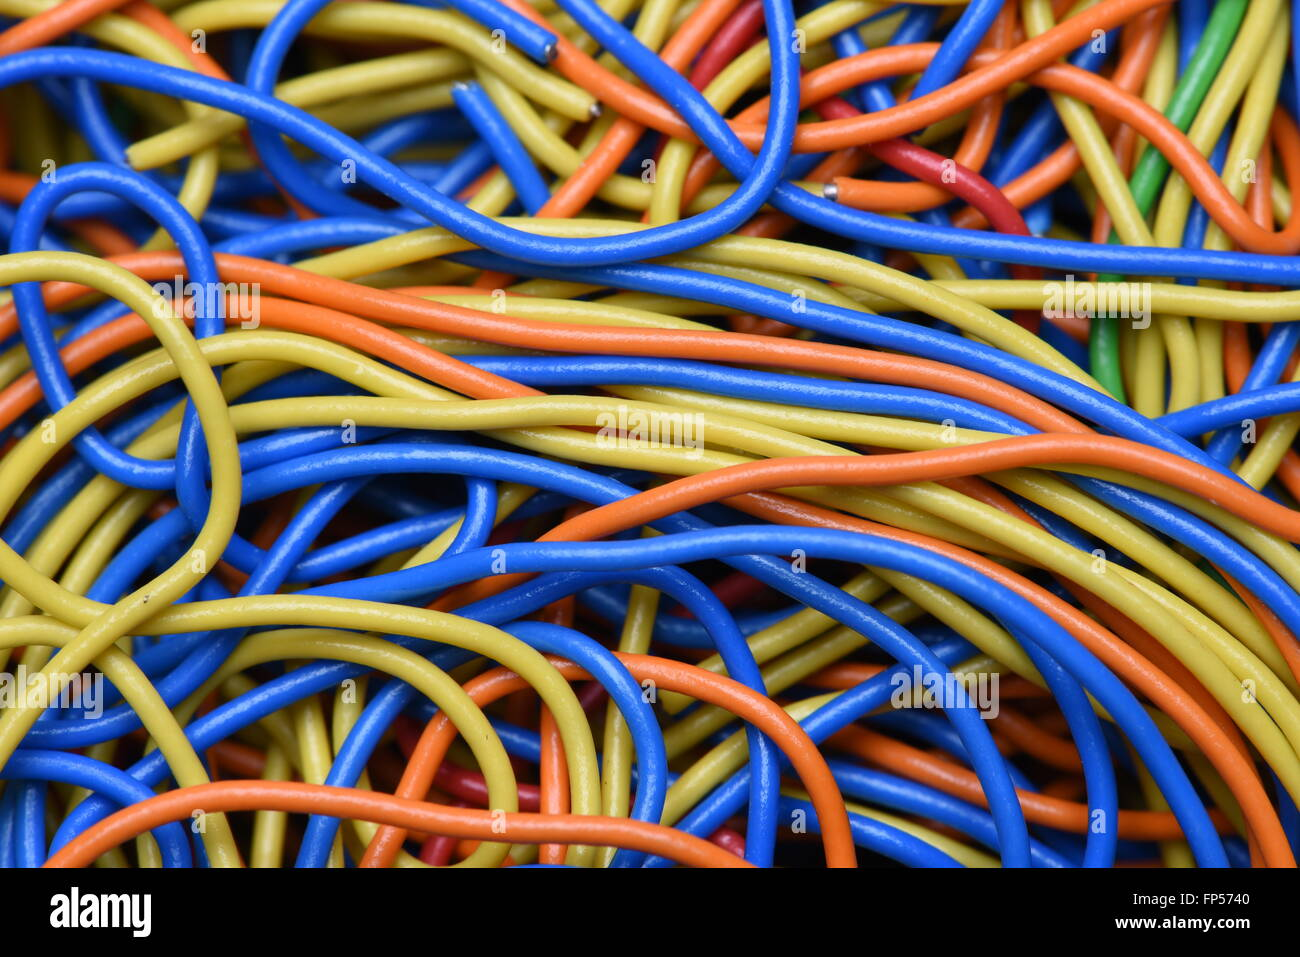 Closeup colored cables and wires Stock Photo: 99689632 - Alamy